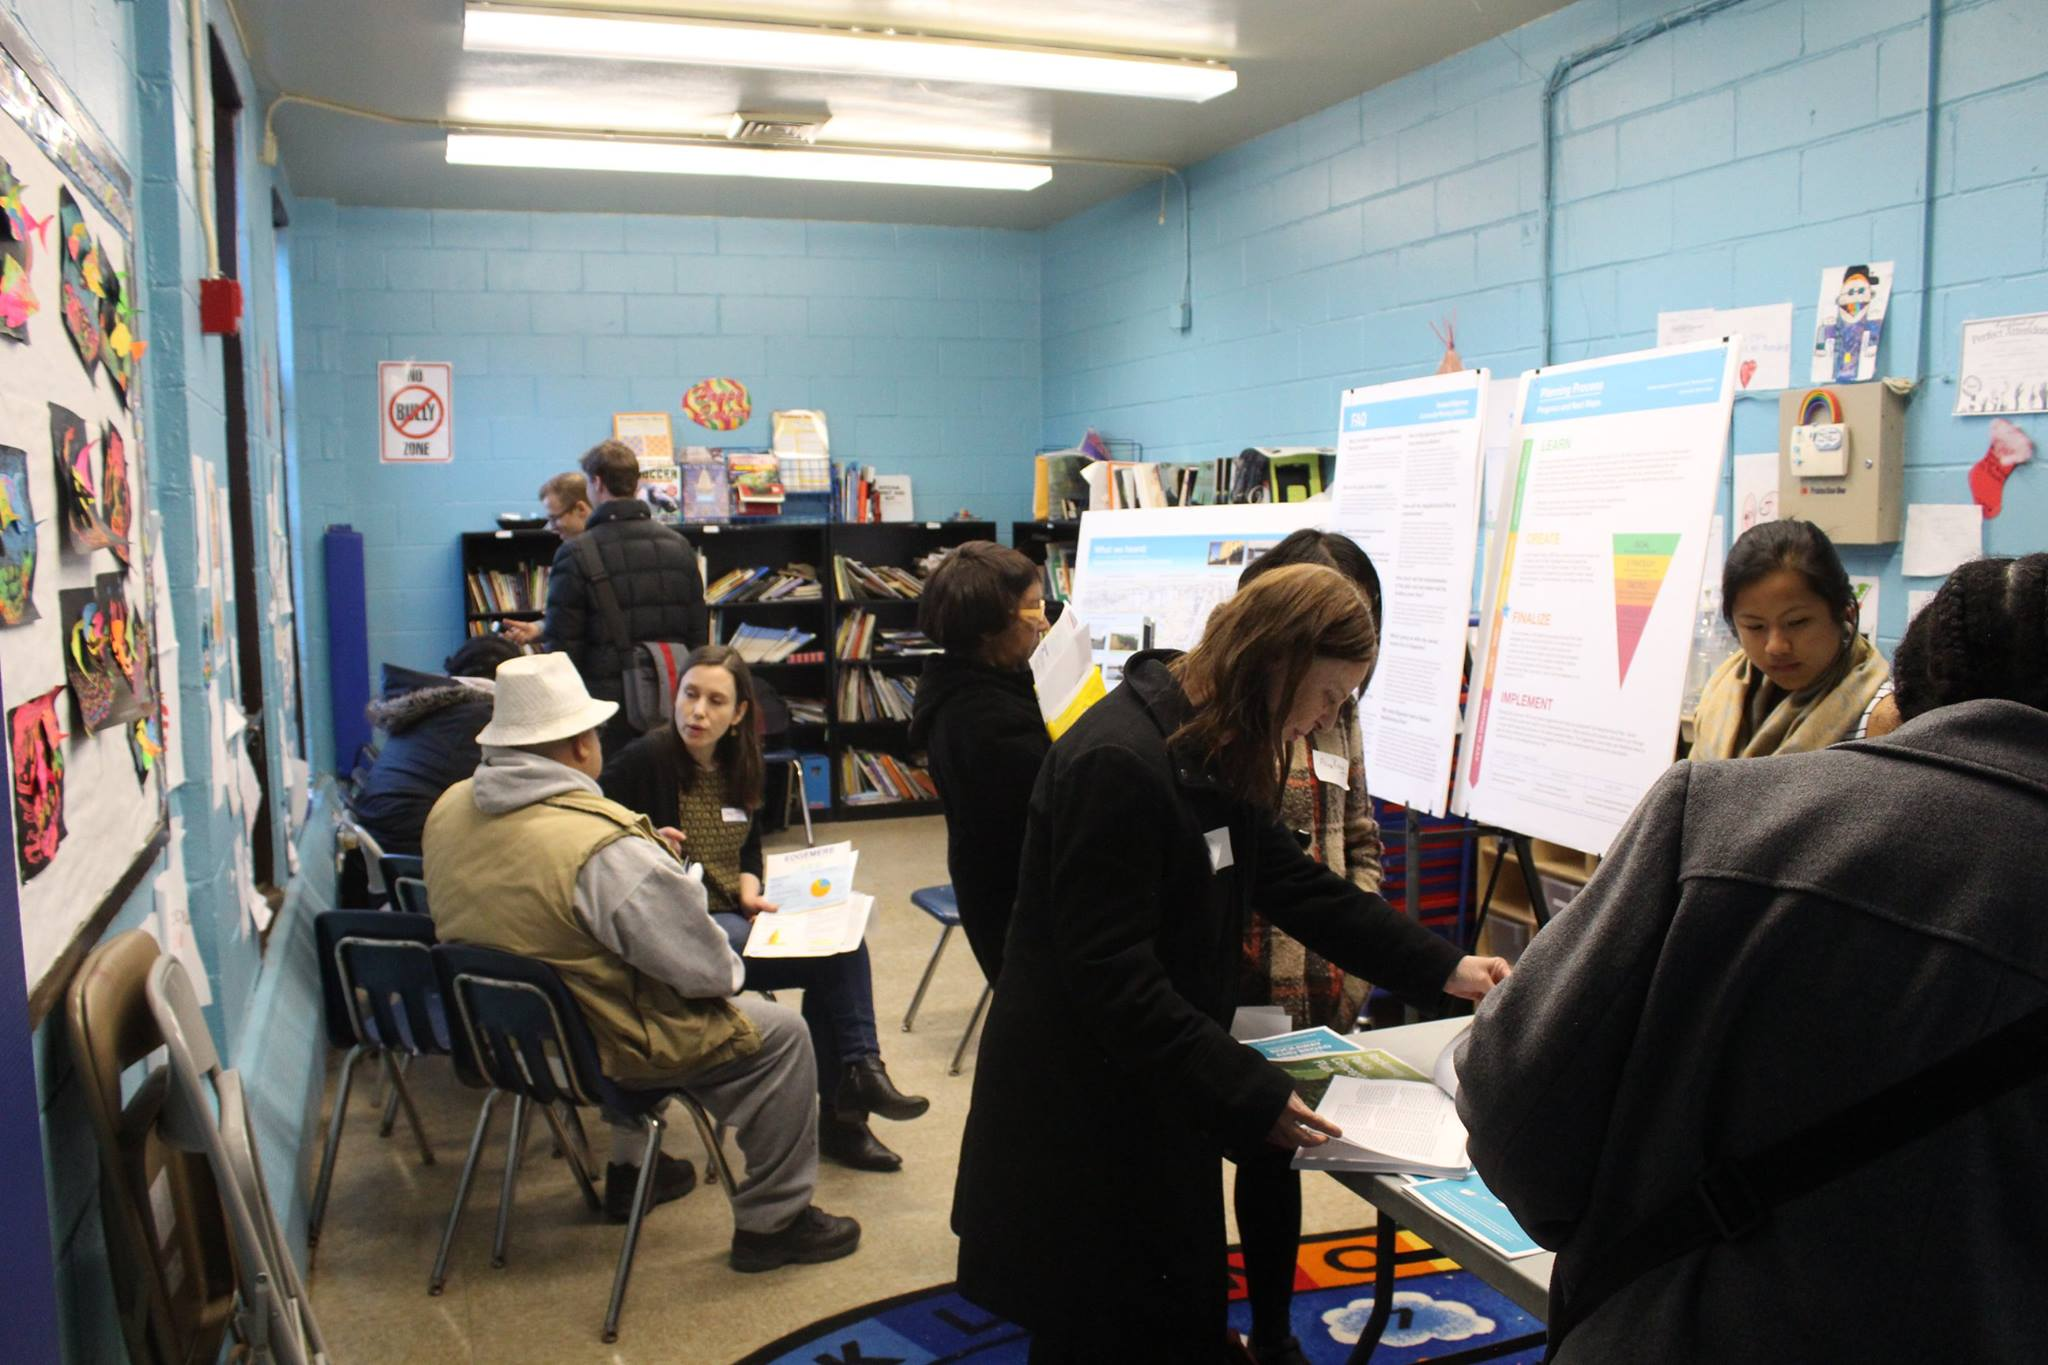 A woman leads a small discussion group of adults in a classroom, talking about resiliency strategies in Edgemere, NY